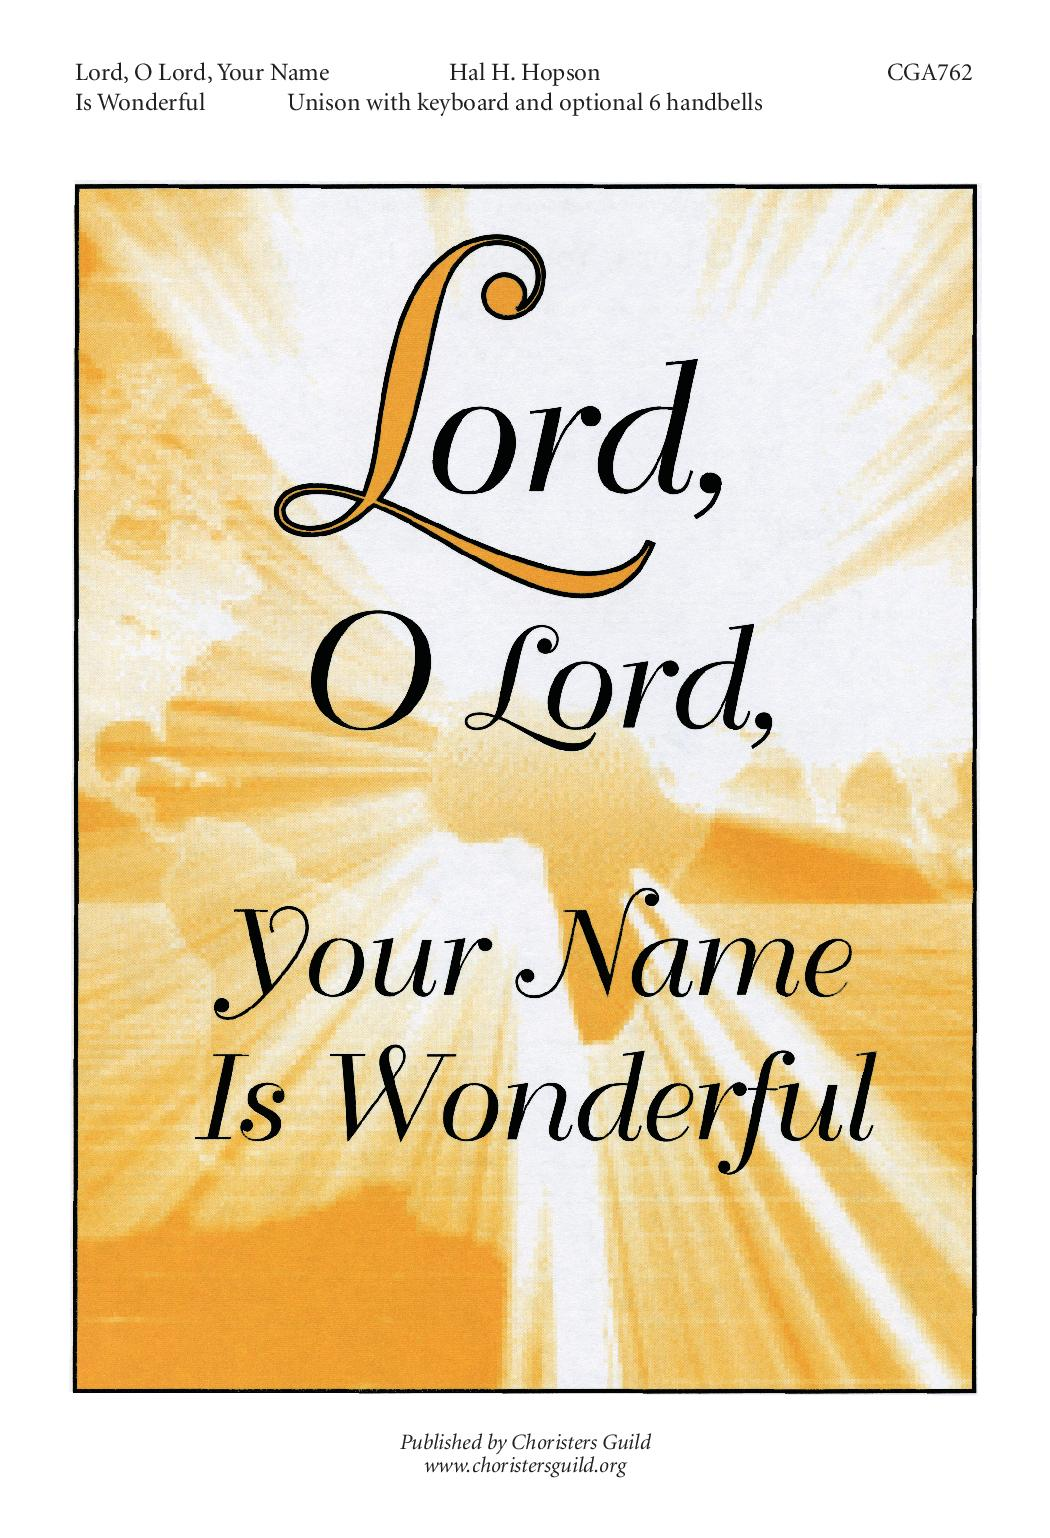 Lord, O Lord, Your Name Is Wonderful